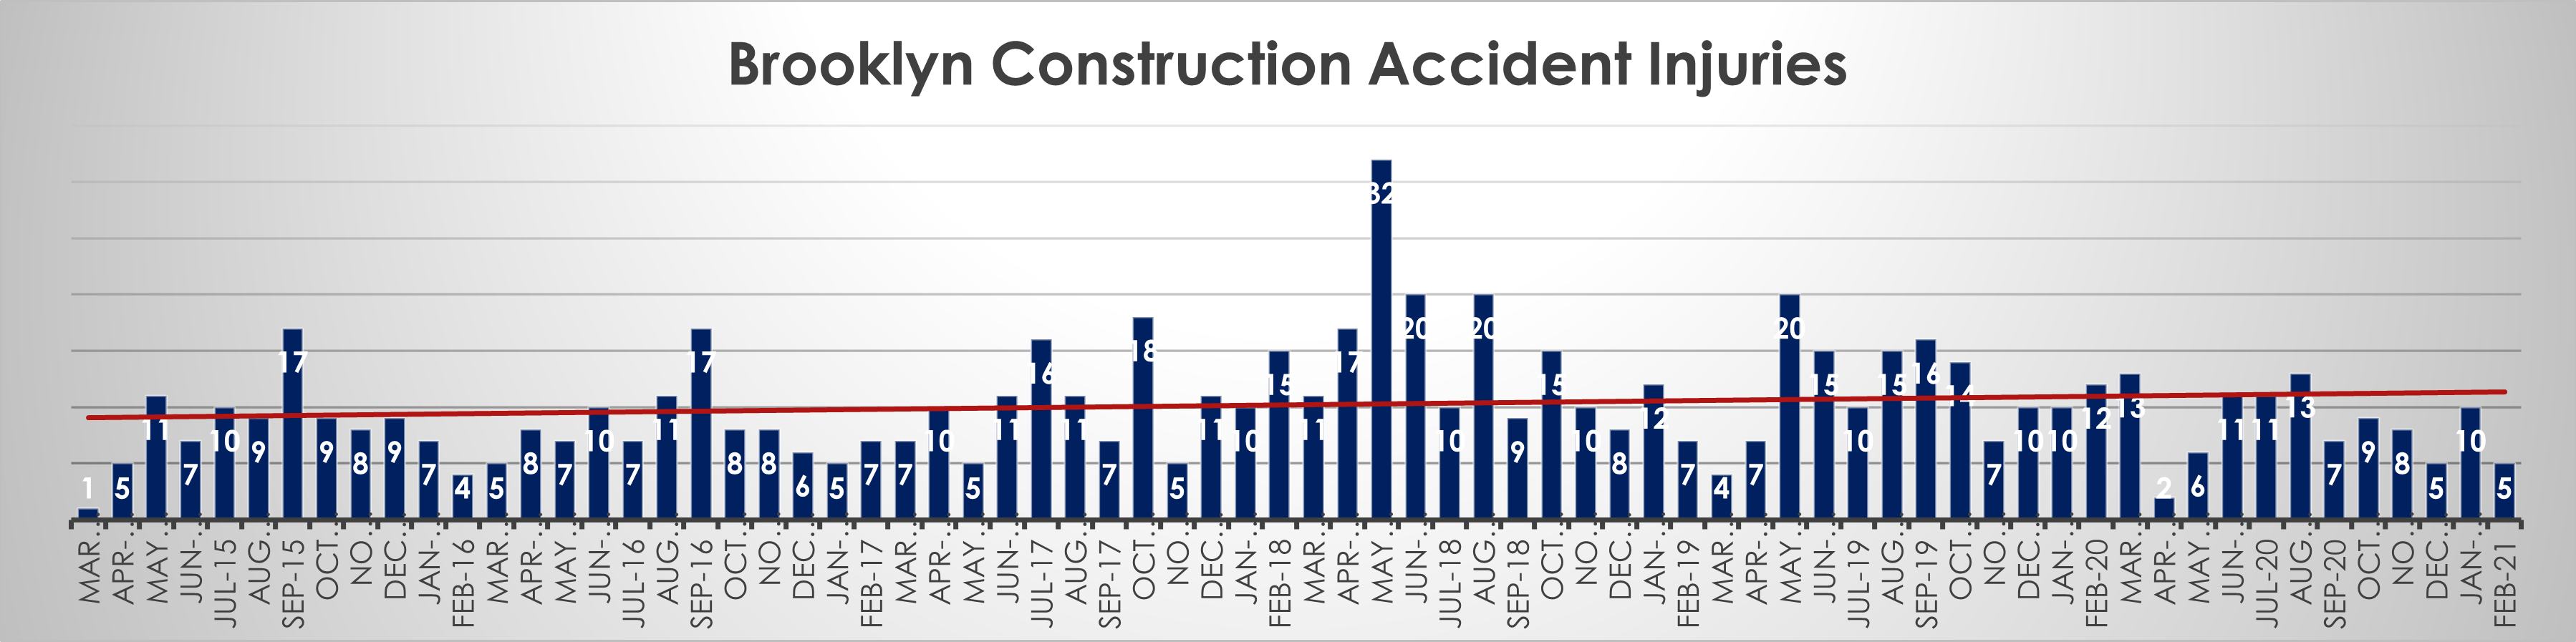 Brooklyn Construction accident injuries February 21